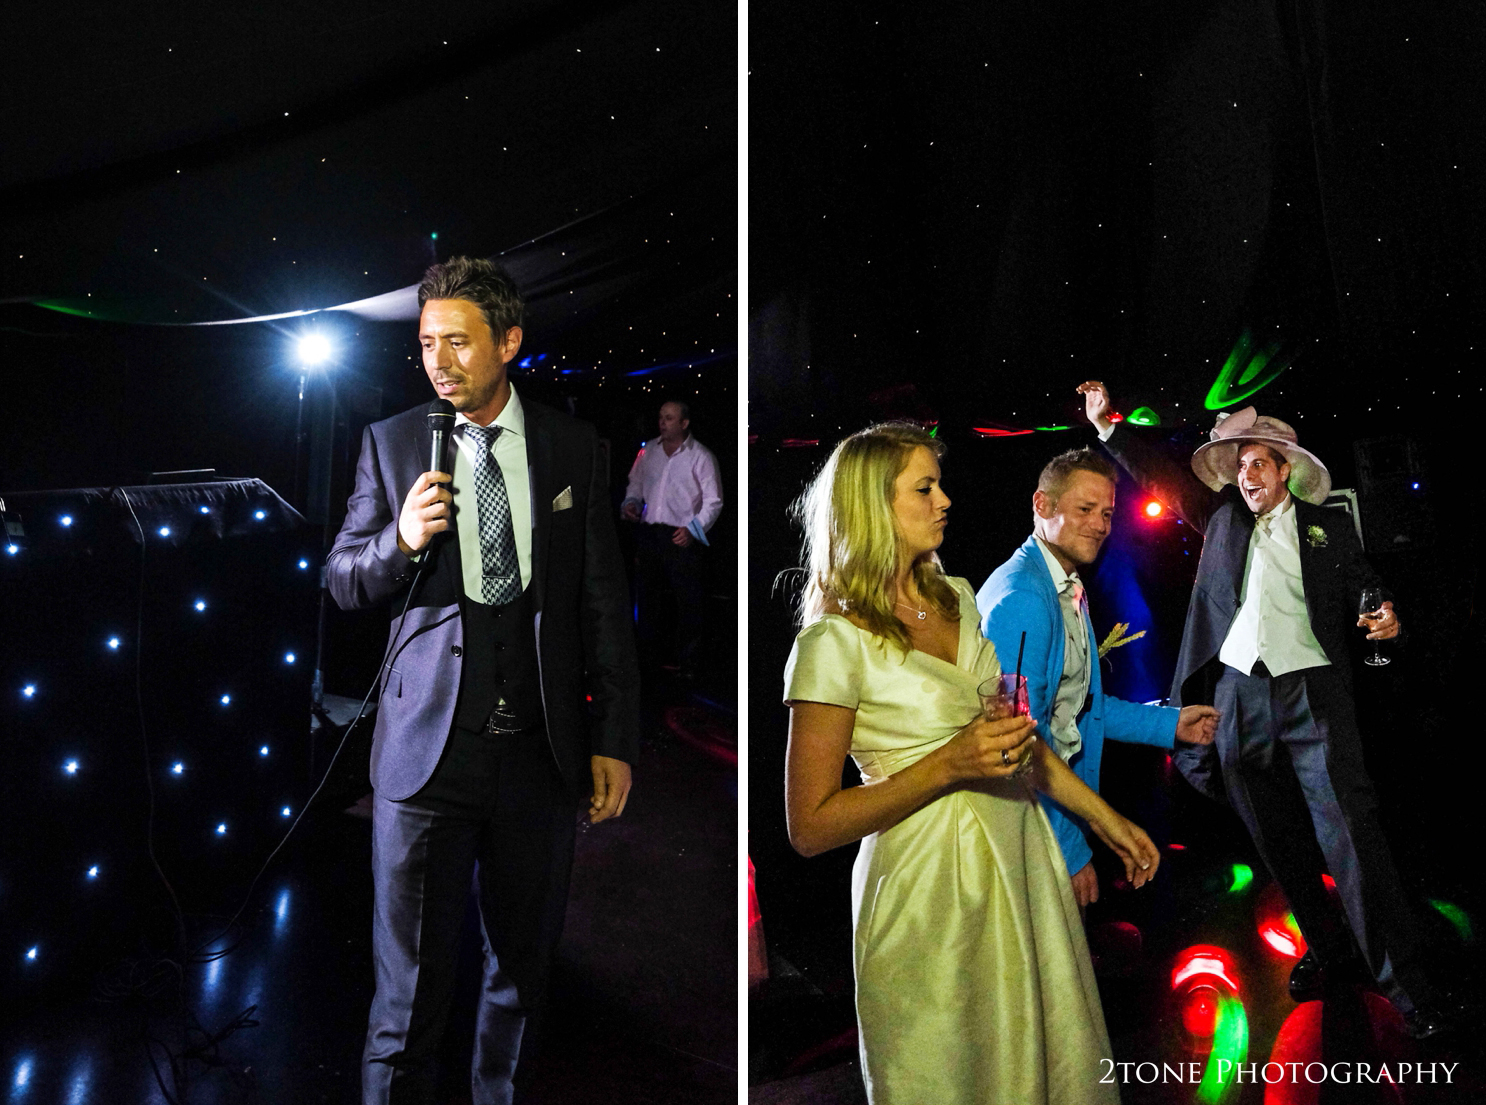 A family friend and wedding guest took to the mic and gave renditions of classic frank Sinatra songs as the guests danced the night away.